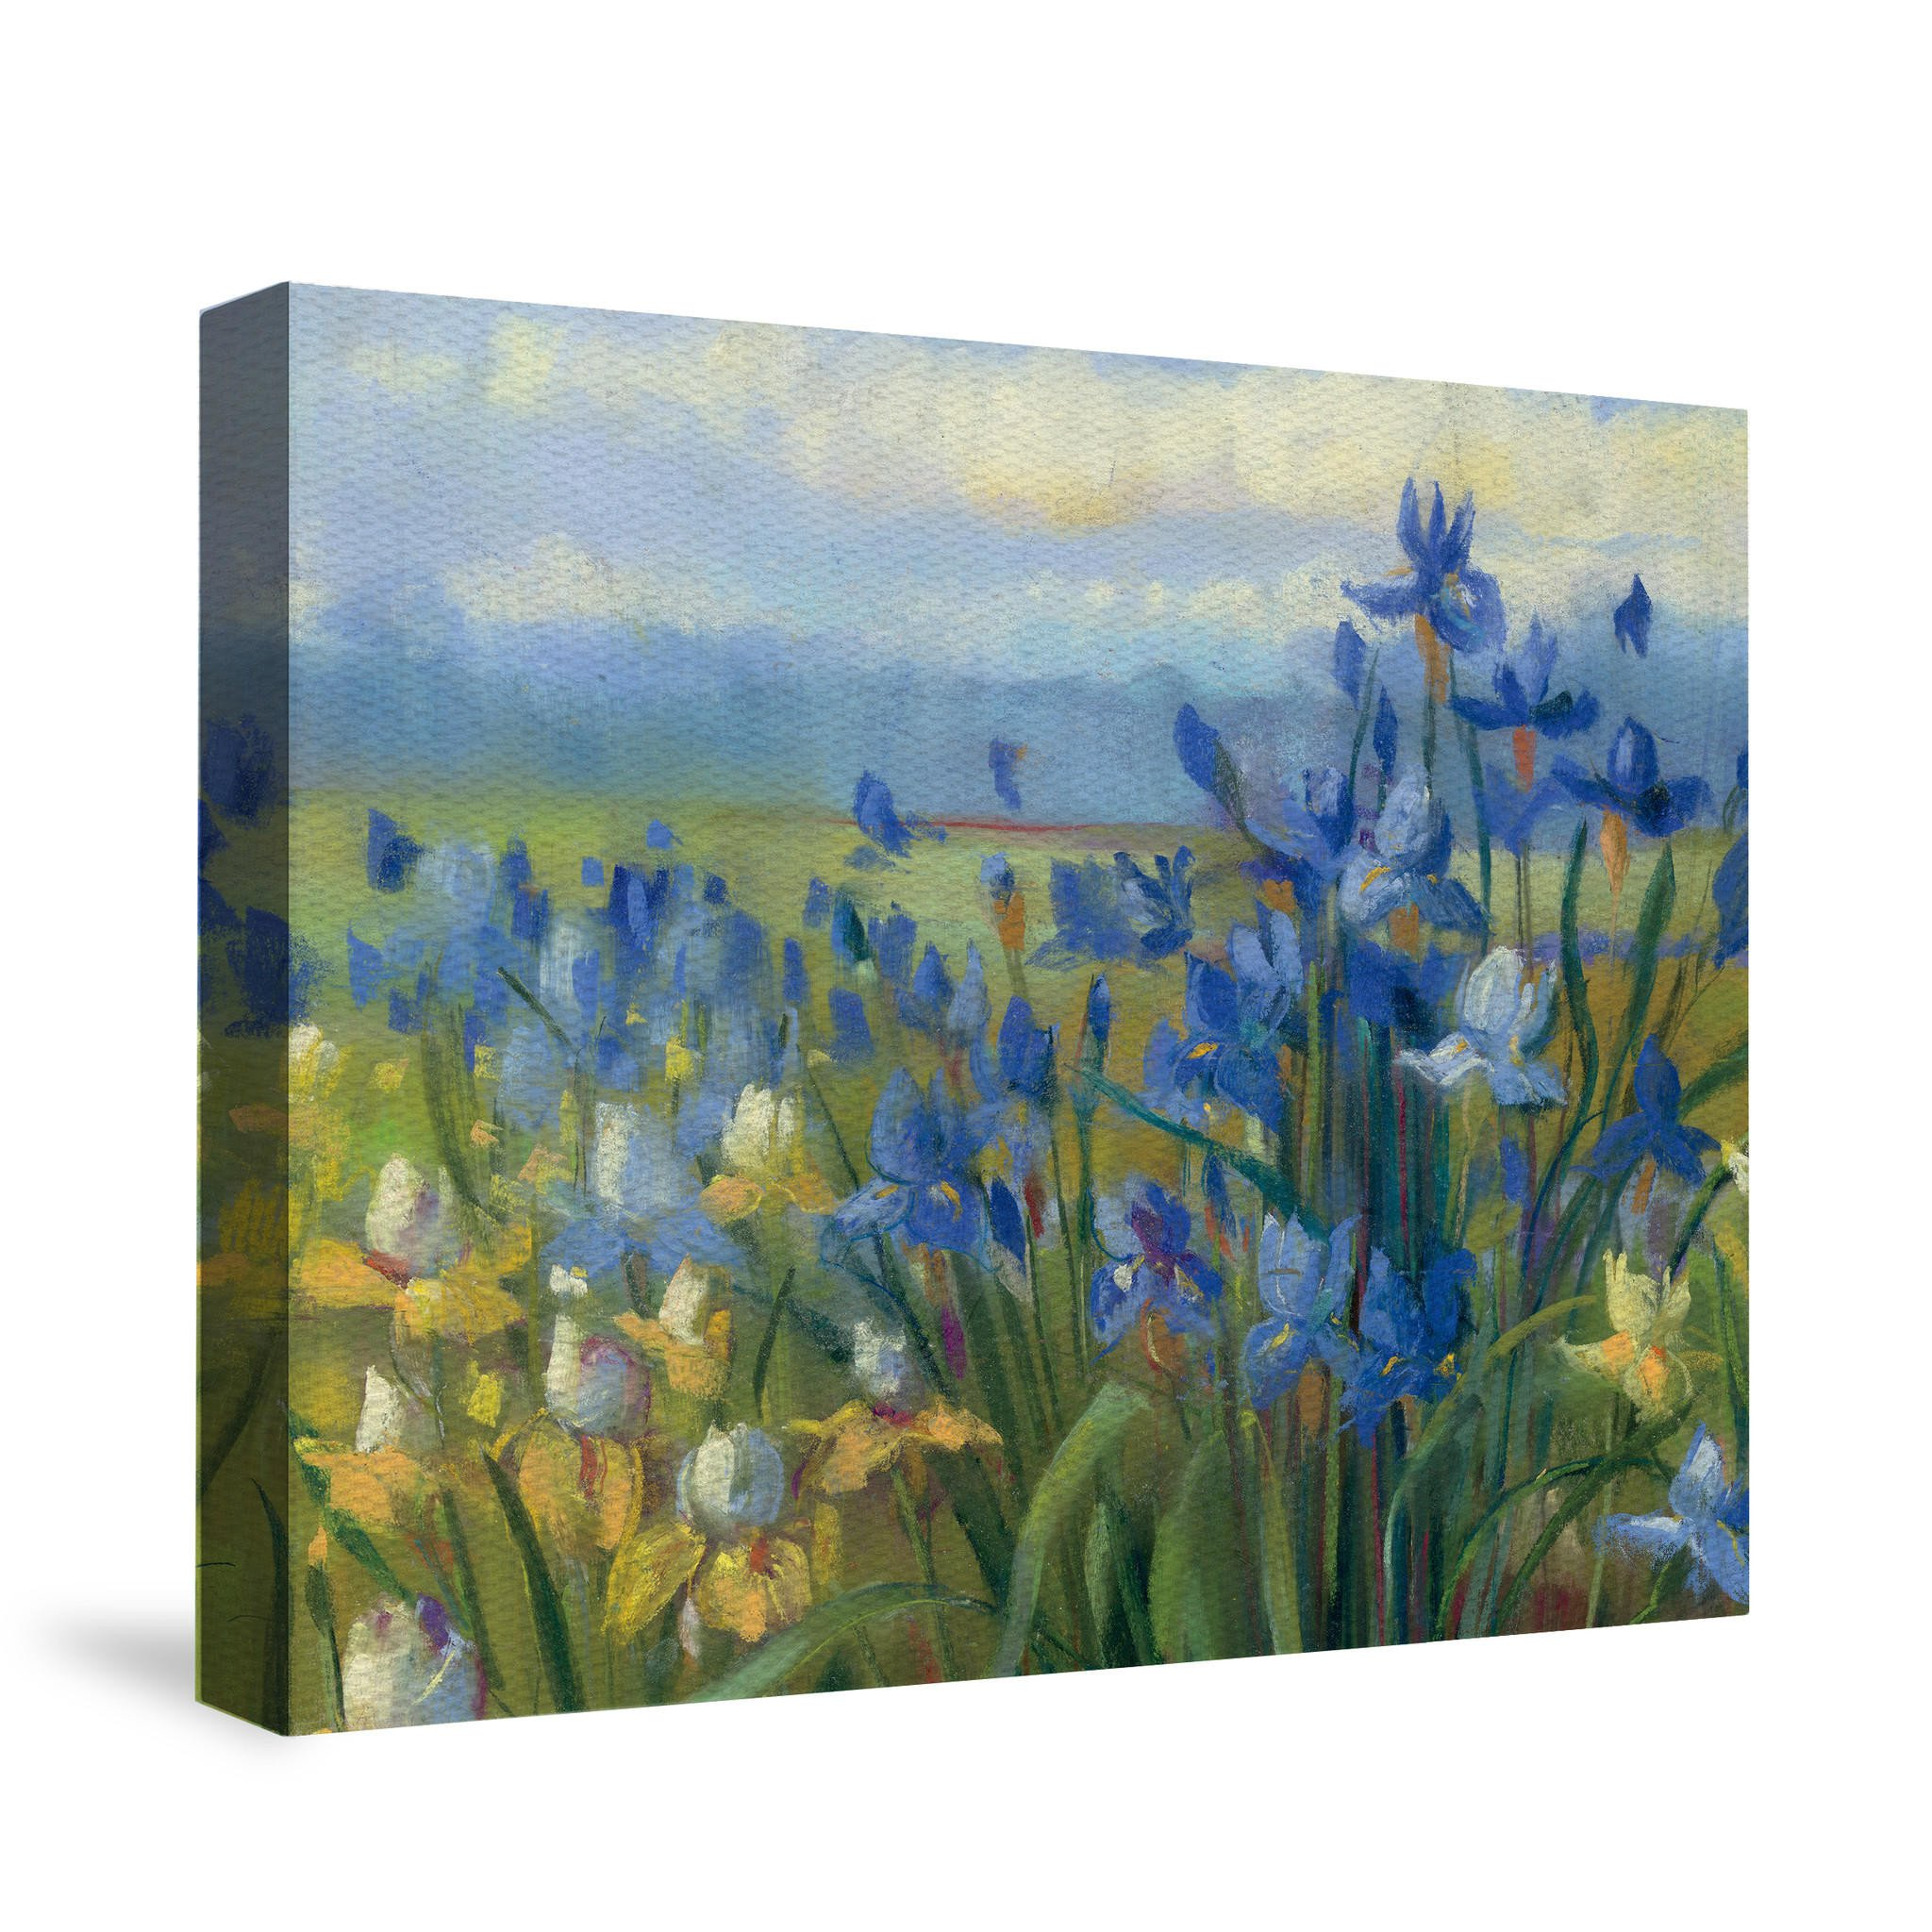 Blue and Yellow Wall Decor Luxury Blue and Yellow Flower Field Canvas Wall From Laural Home